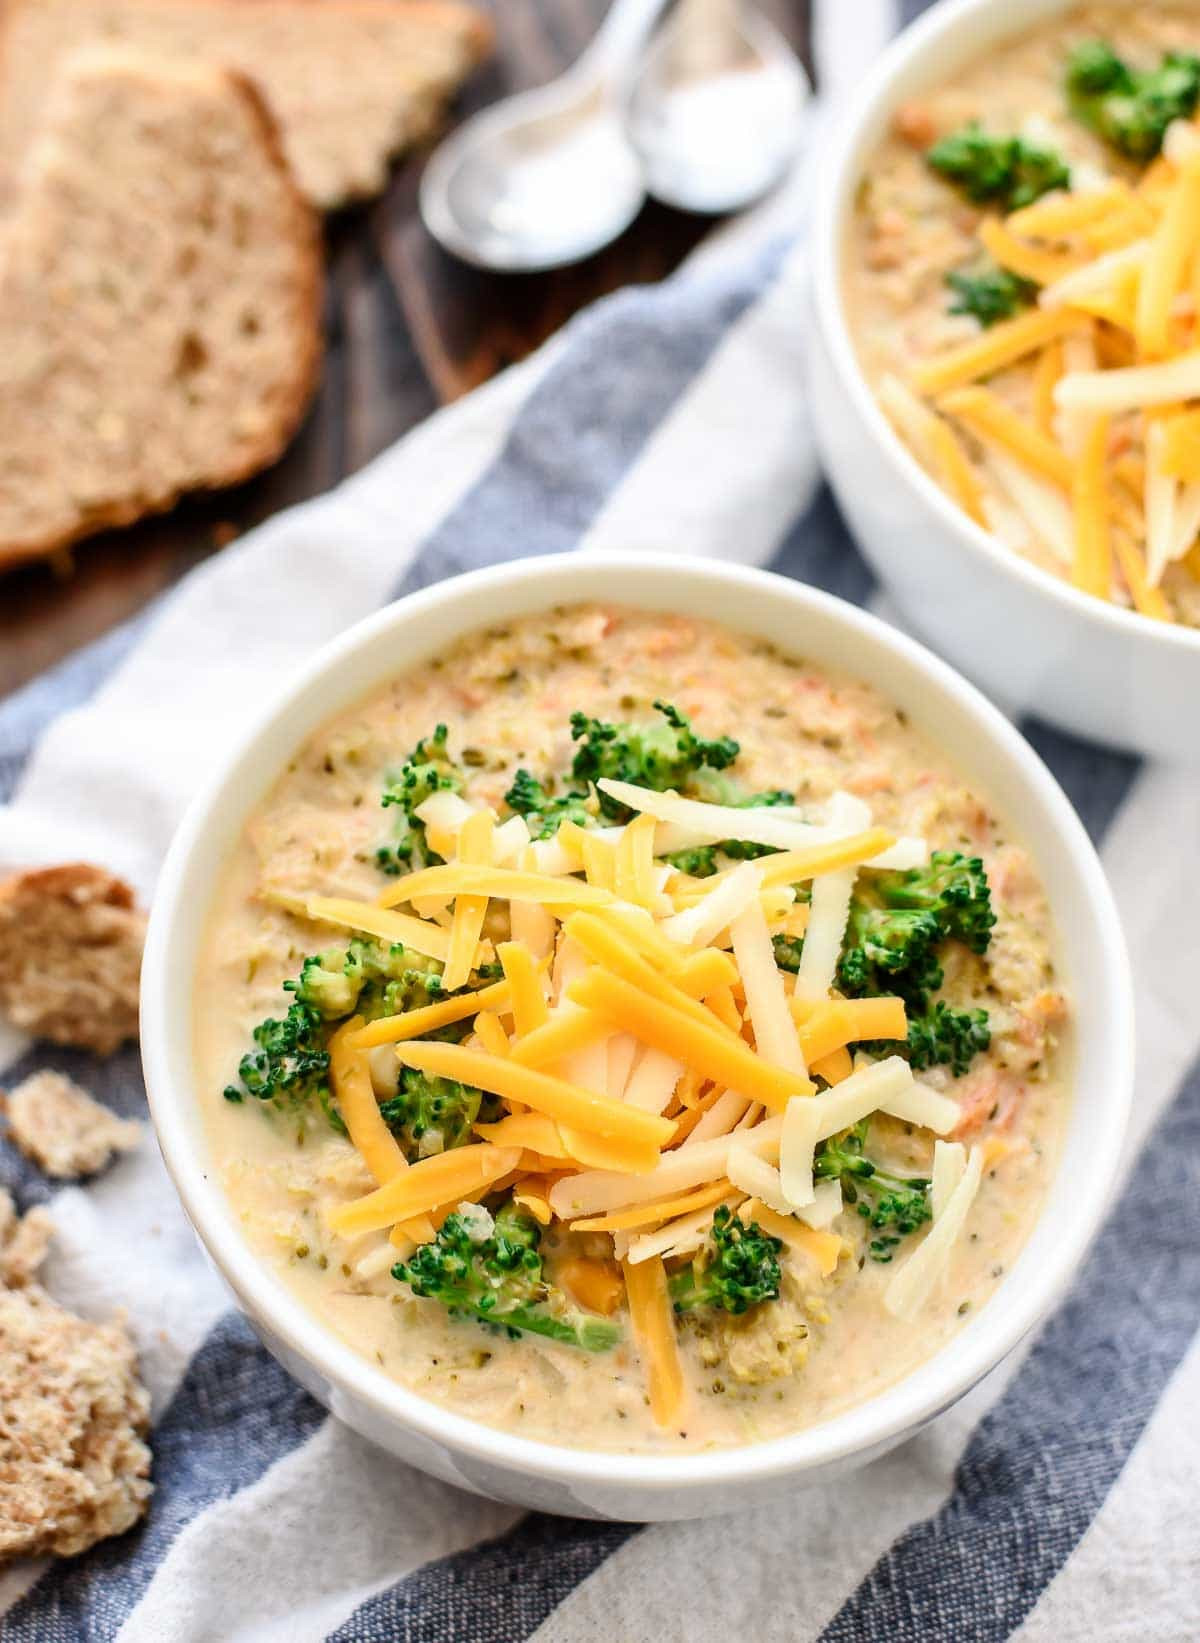 Healthy Crockpot Soups  Slow Cooker Broccoli and Cheese Soup